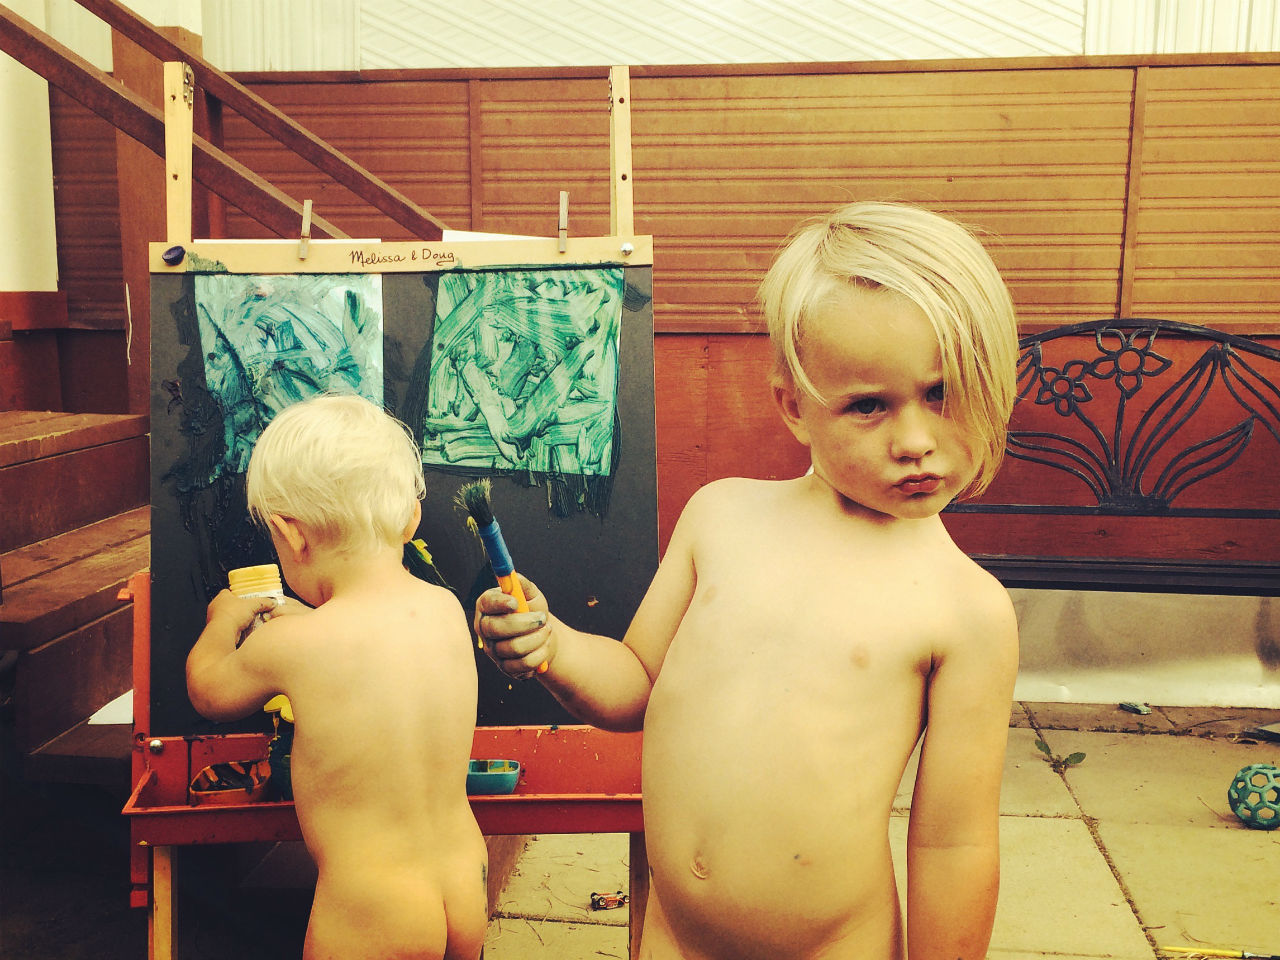 Two brothers playing around in the nude